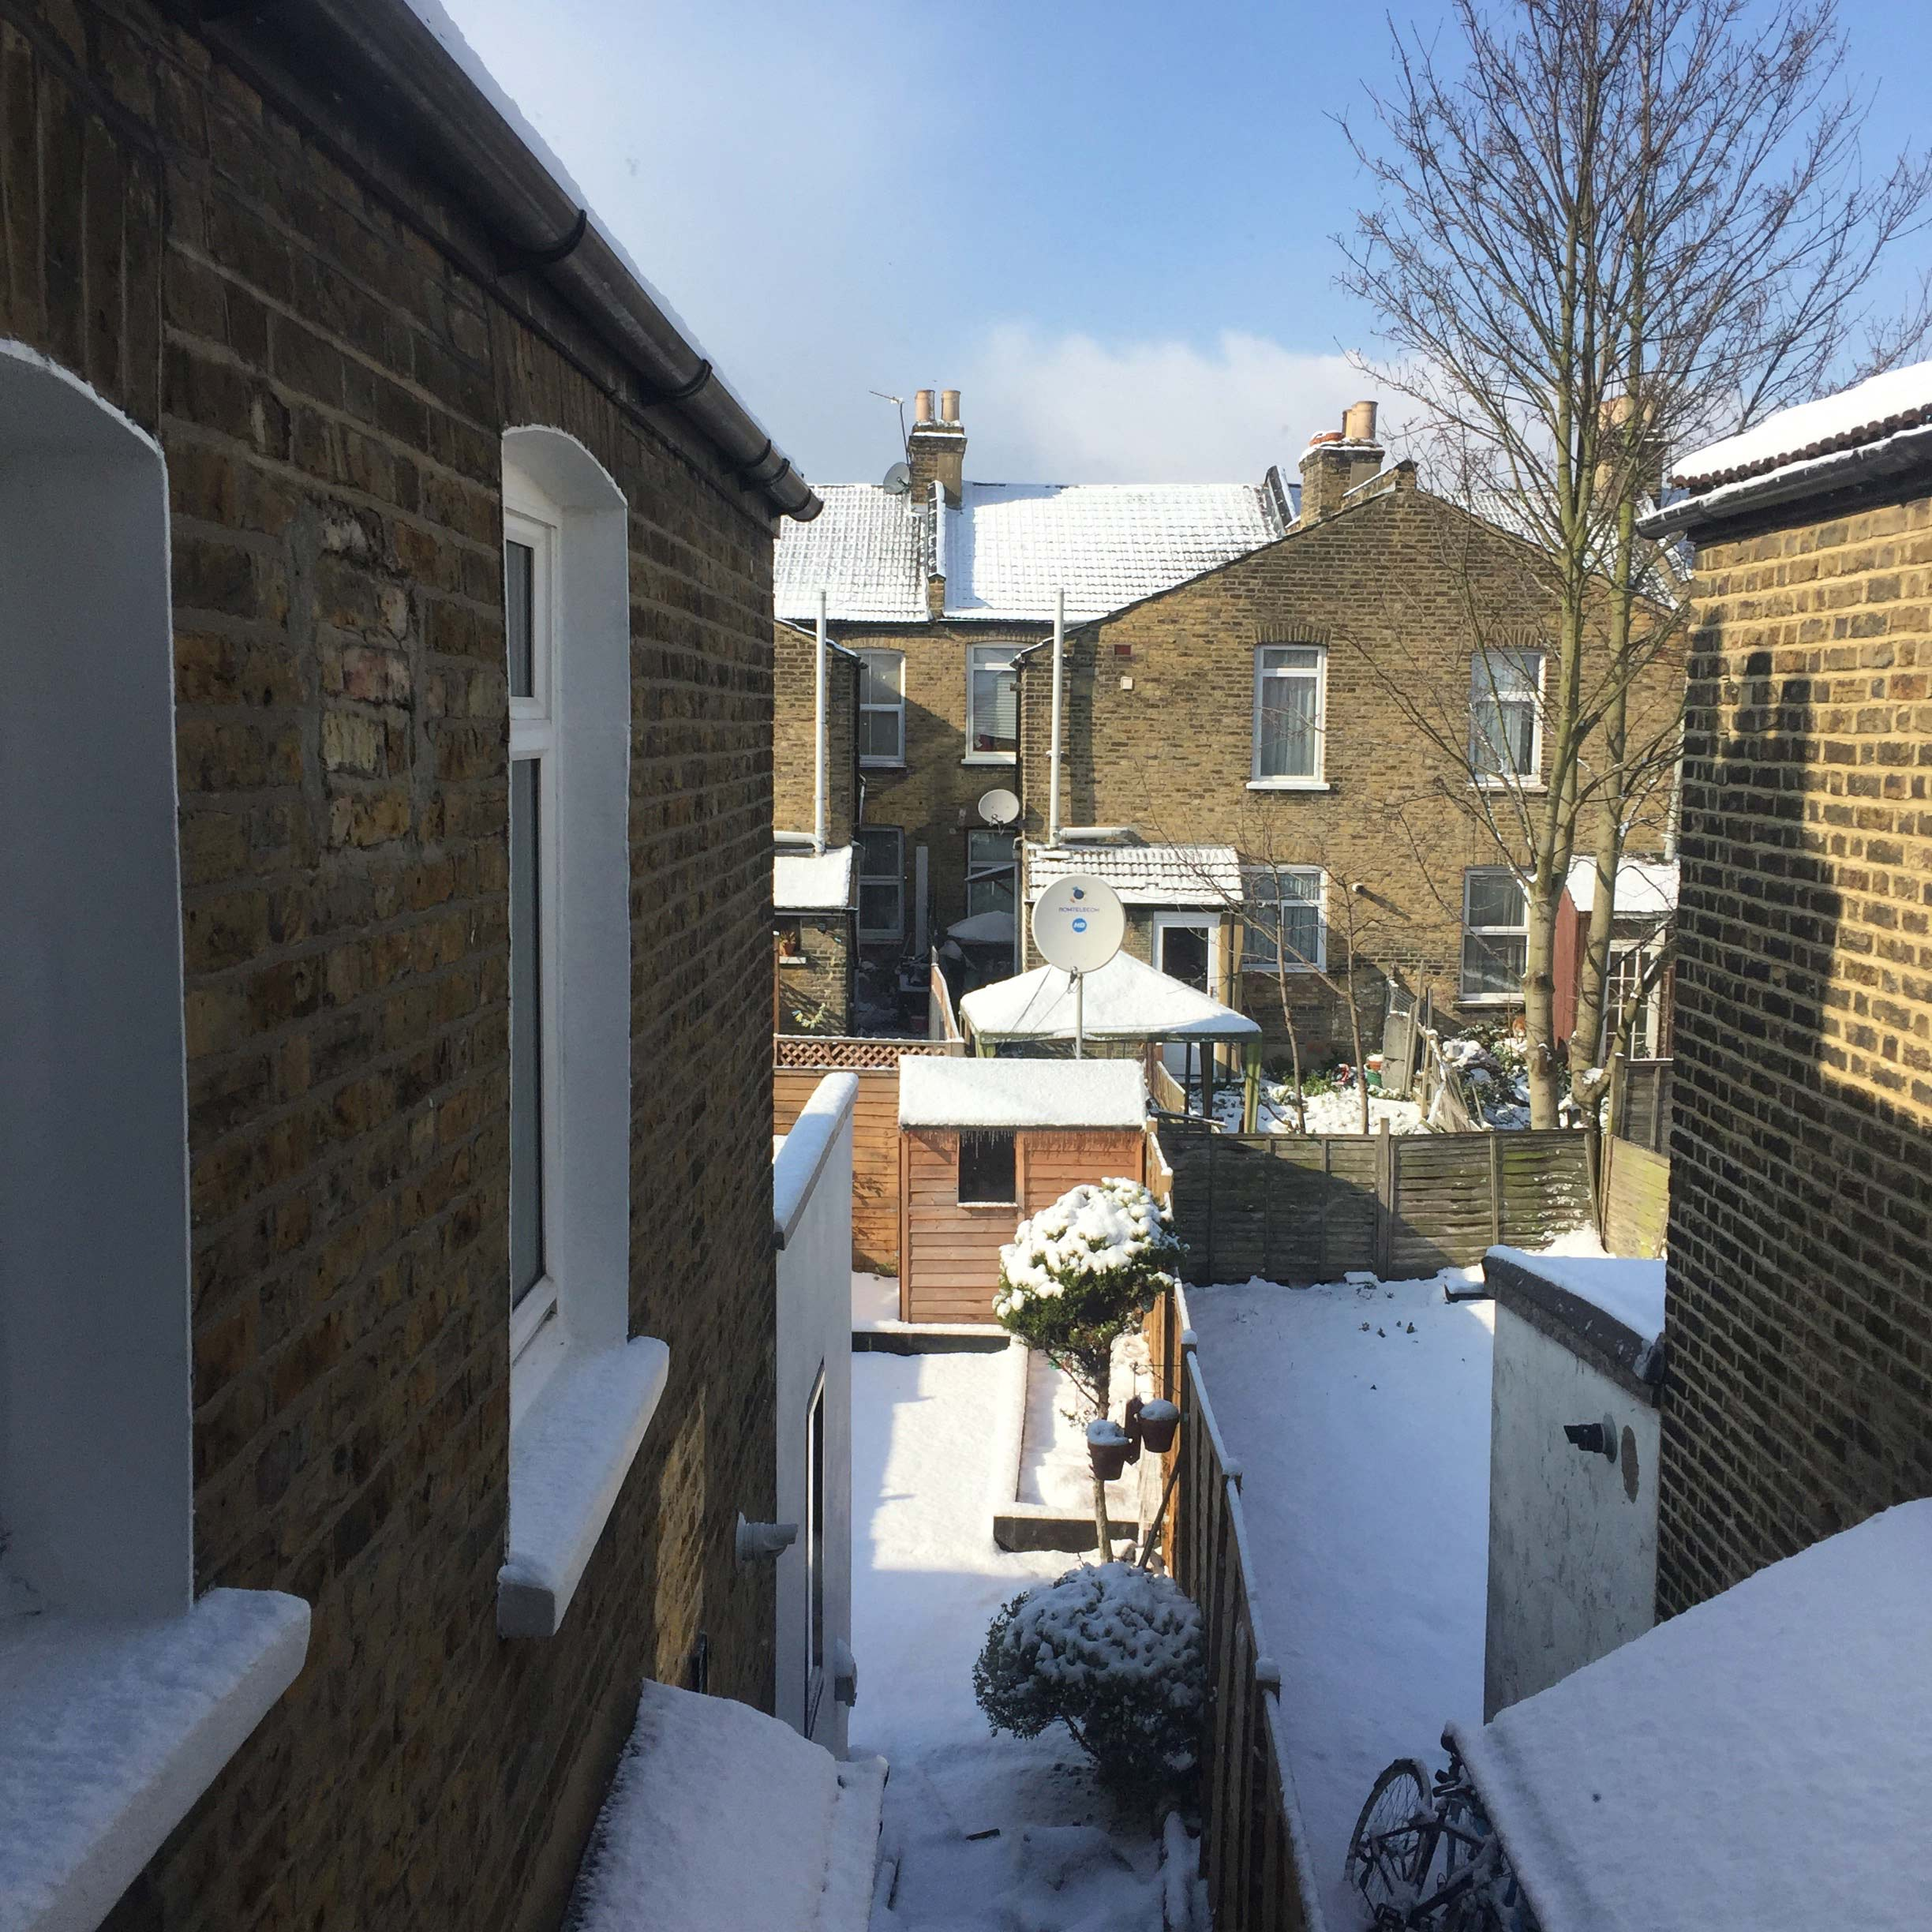 Snow on terraced houses in east London